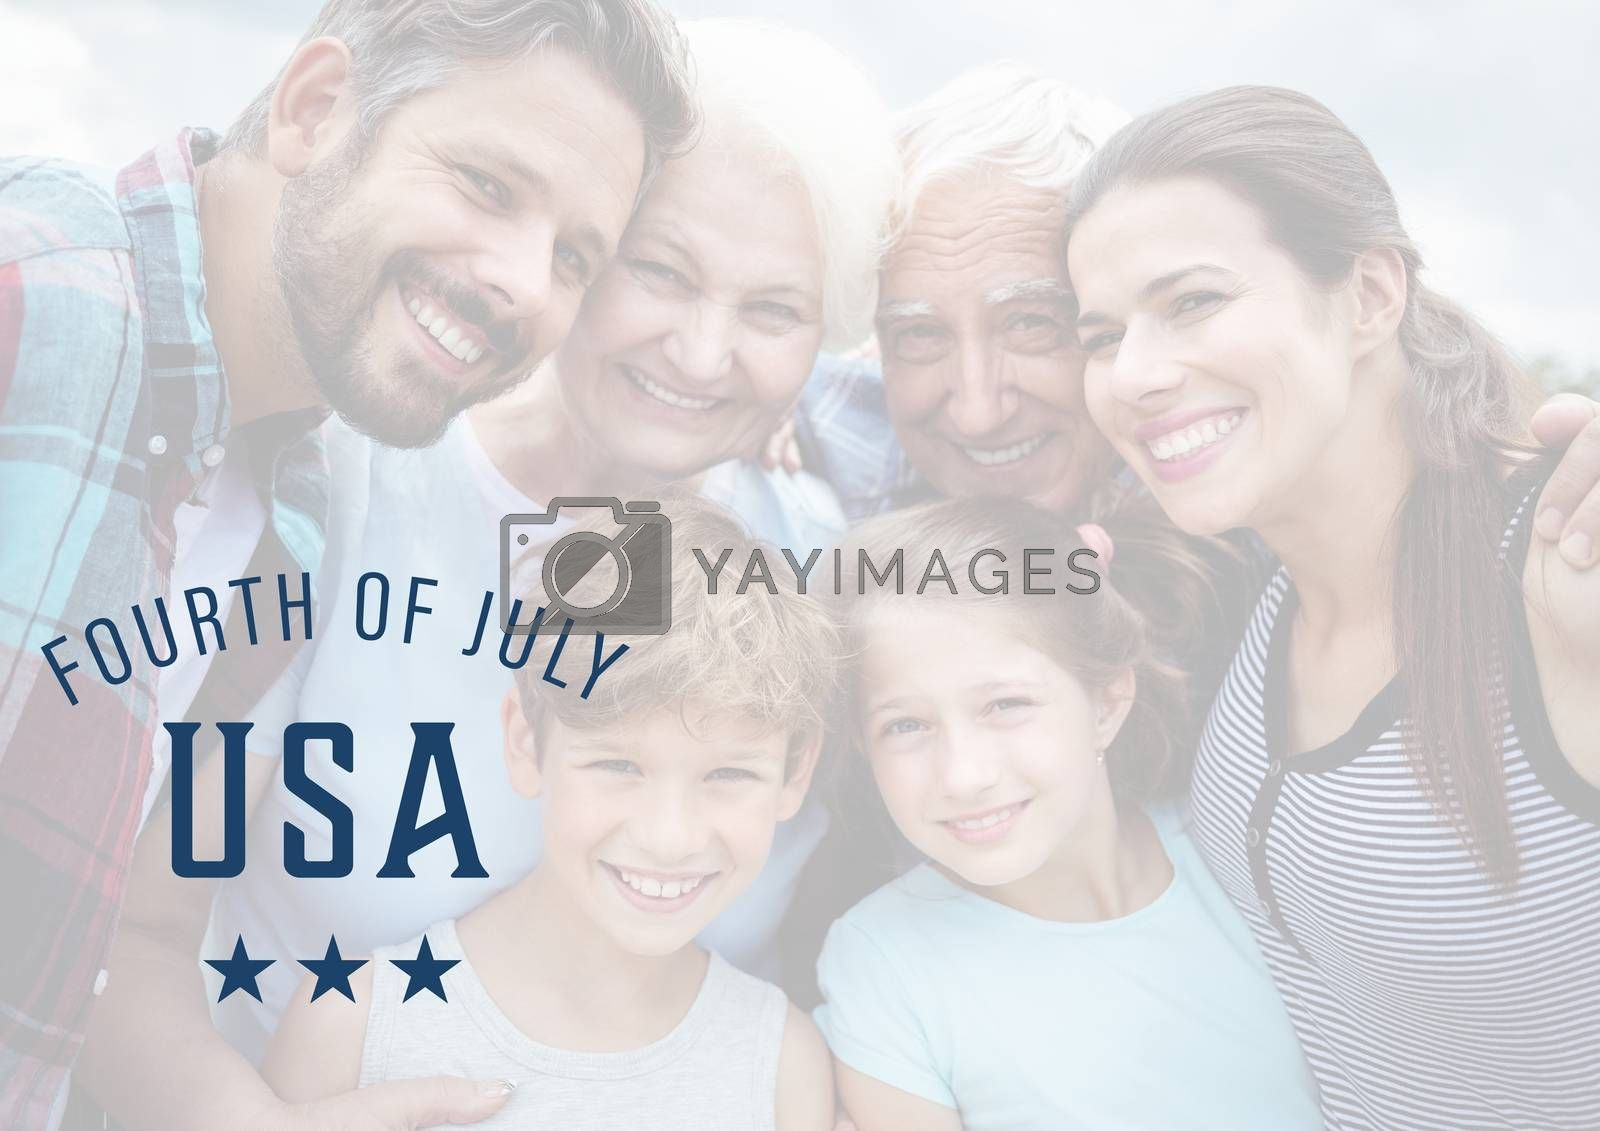 Smiling family for the 4th of july by Wavebreakmedia